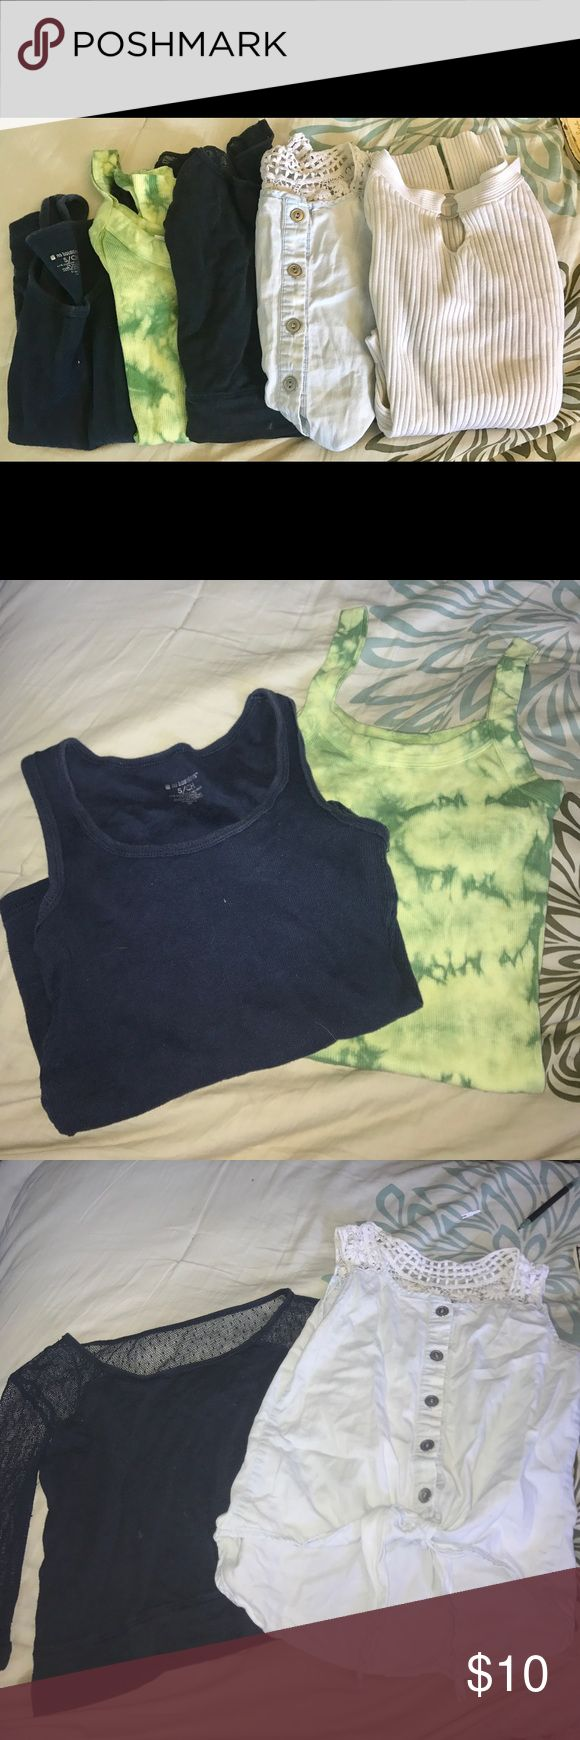 Children's small clothes Includes: 2 tank tops- navy(No Boundaries) and green tie die(Arizona Jean Co), Abercrombie navy blue top with mesh sleeves/back, Takara tie front tank with crochet sleeves, and Energie long sleeve white top. ALL CHILDS SIZE SMALL Abercombie Kids Shirts & Tops